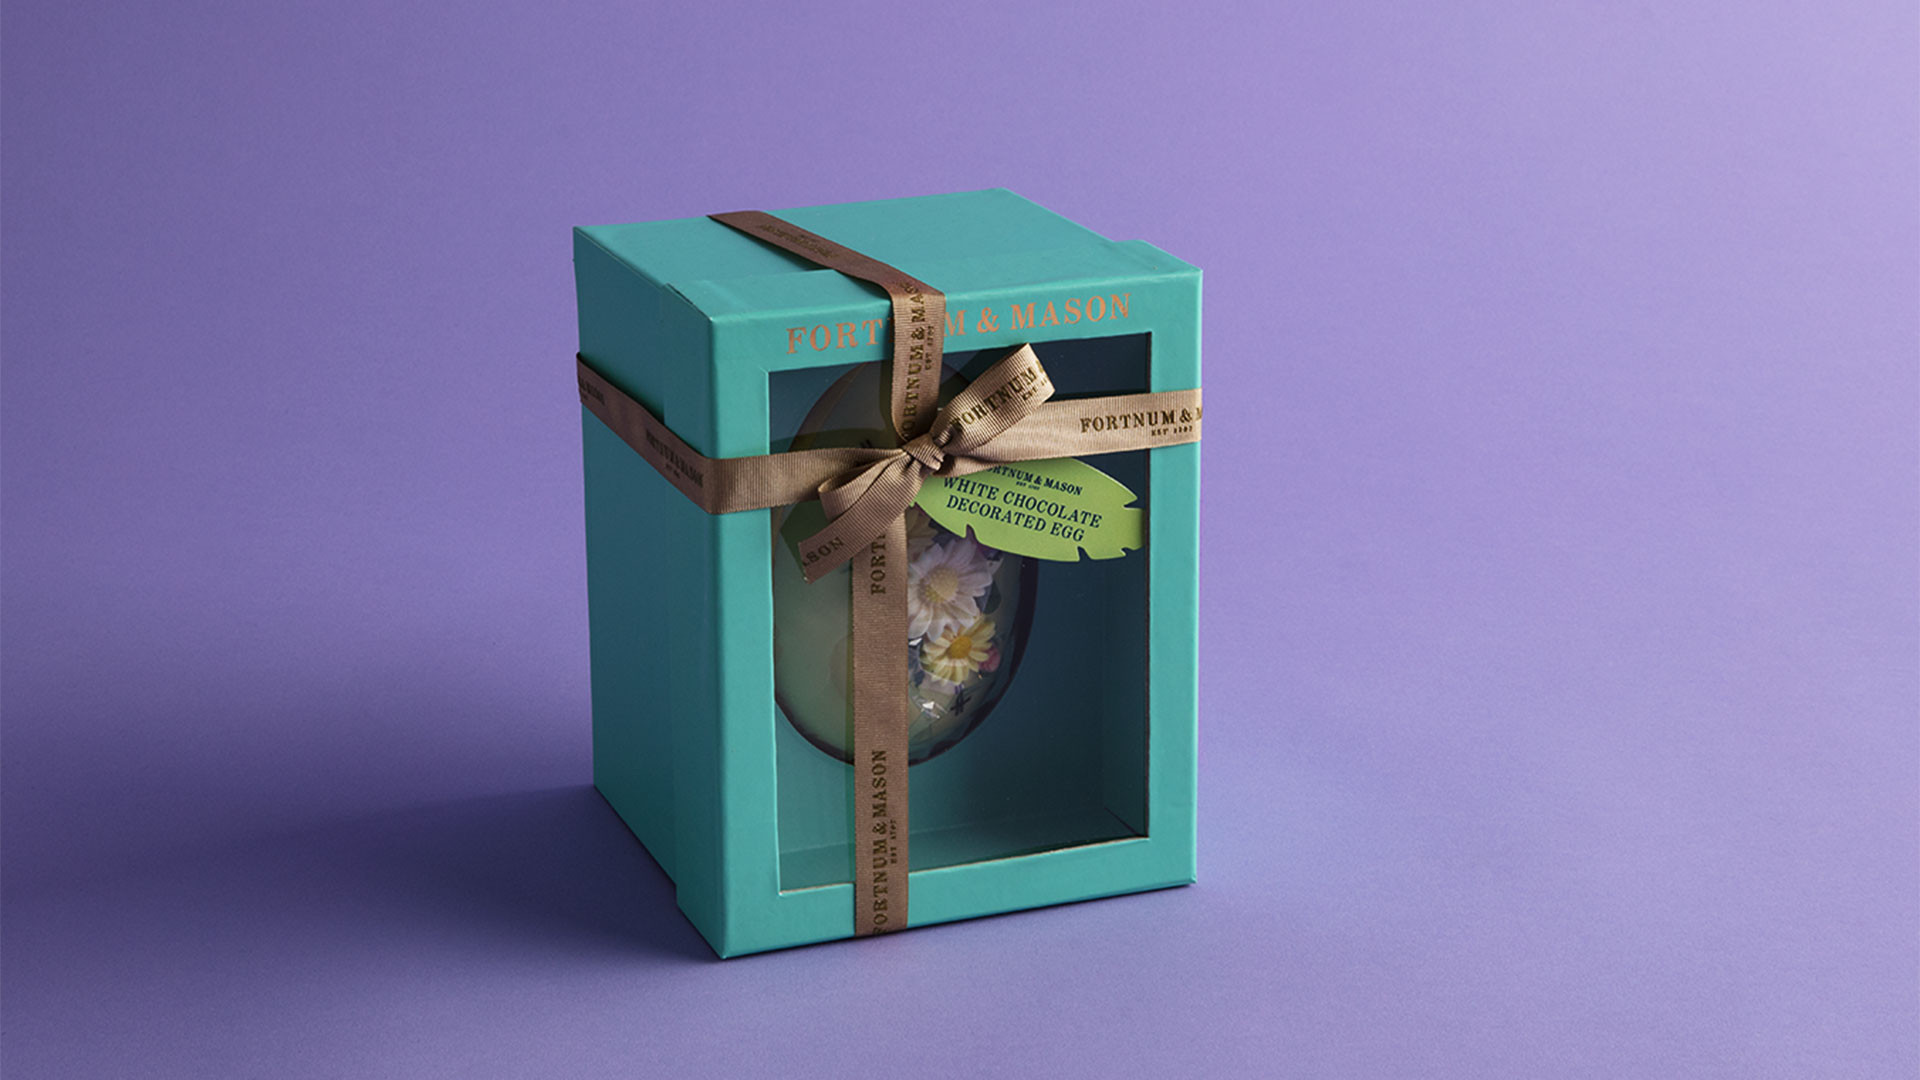 Fortnum and Mason white chocolate hand-decorated Easter egg